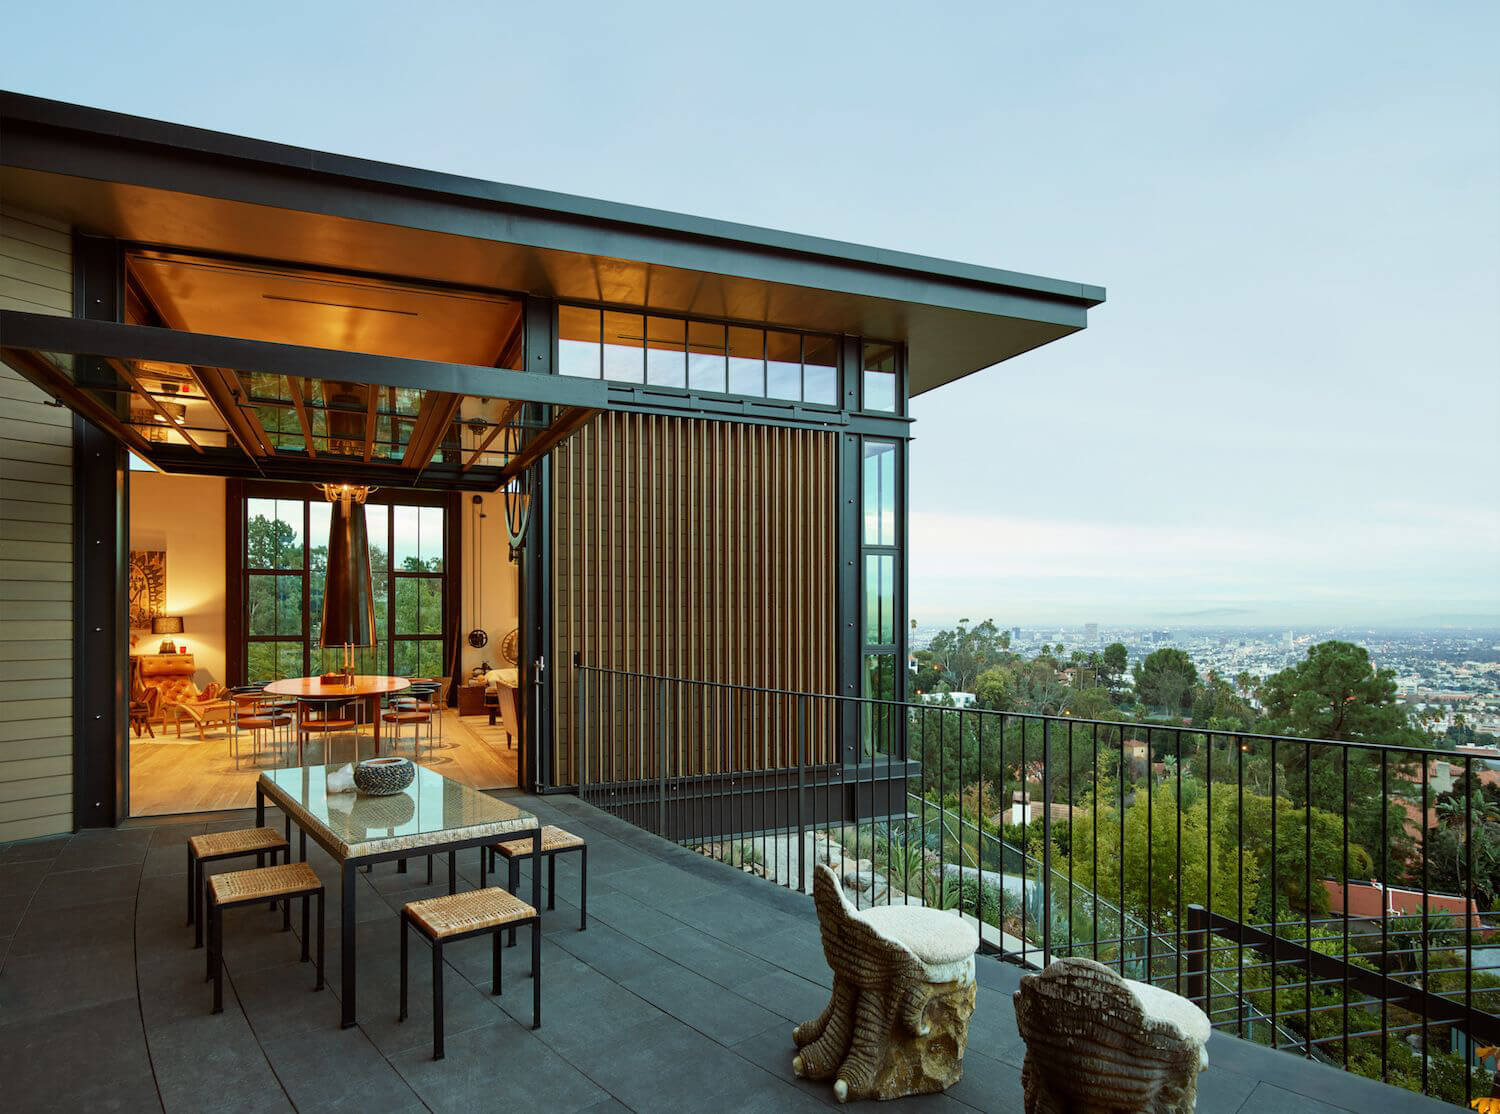 The terraces connect the indoors to the outdoors and capture views from the hilltop| Hollywood Hill House | Mutuus Studio | STIRworld